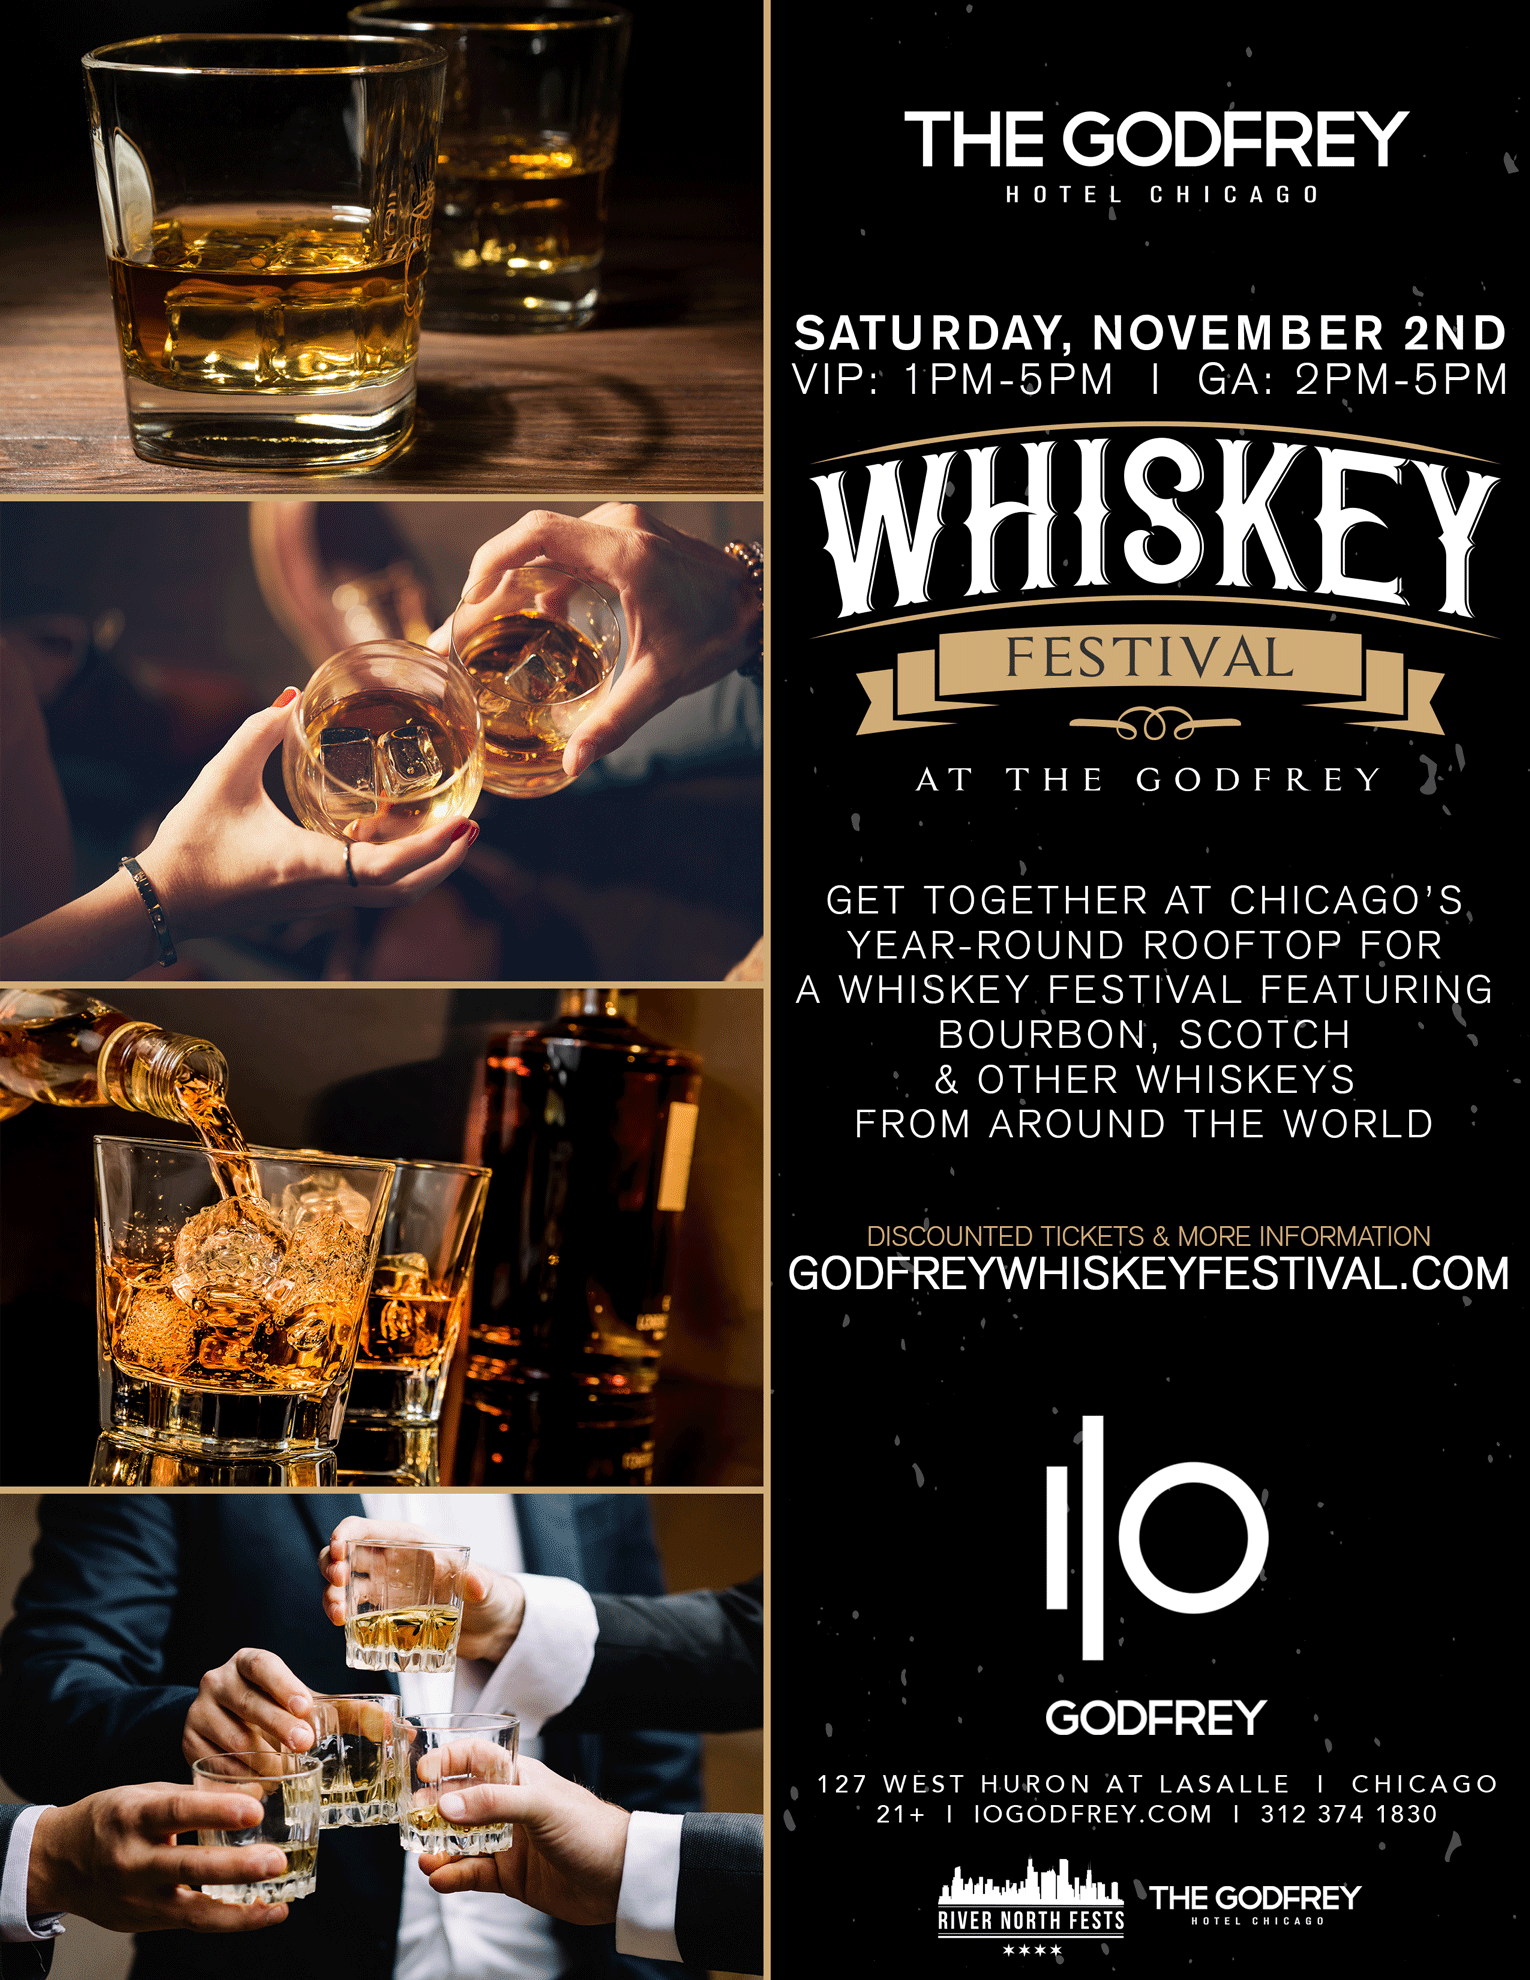 Whiskey Festival at The Godfrey - Get together at Chicago's year-round rooftop for a whiskey festival featuring bourbon, scotch & other whiskey tastings from around the world!